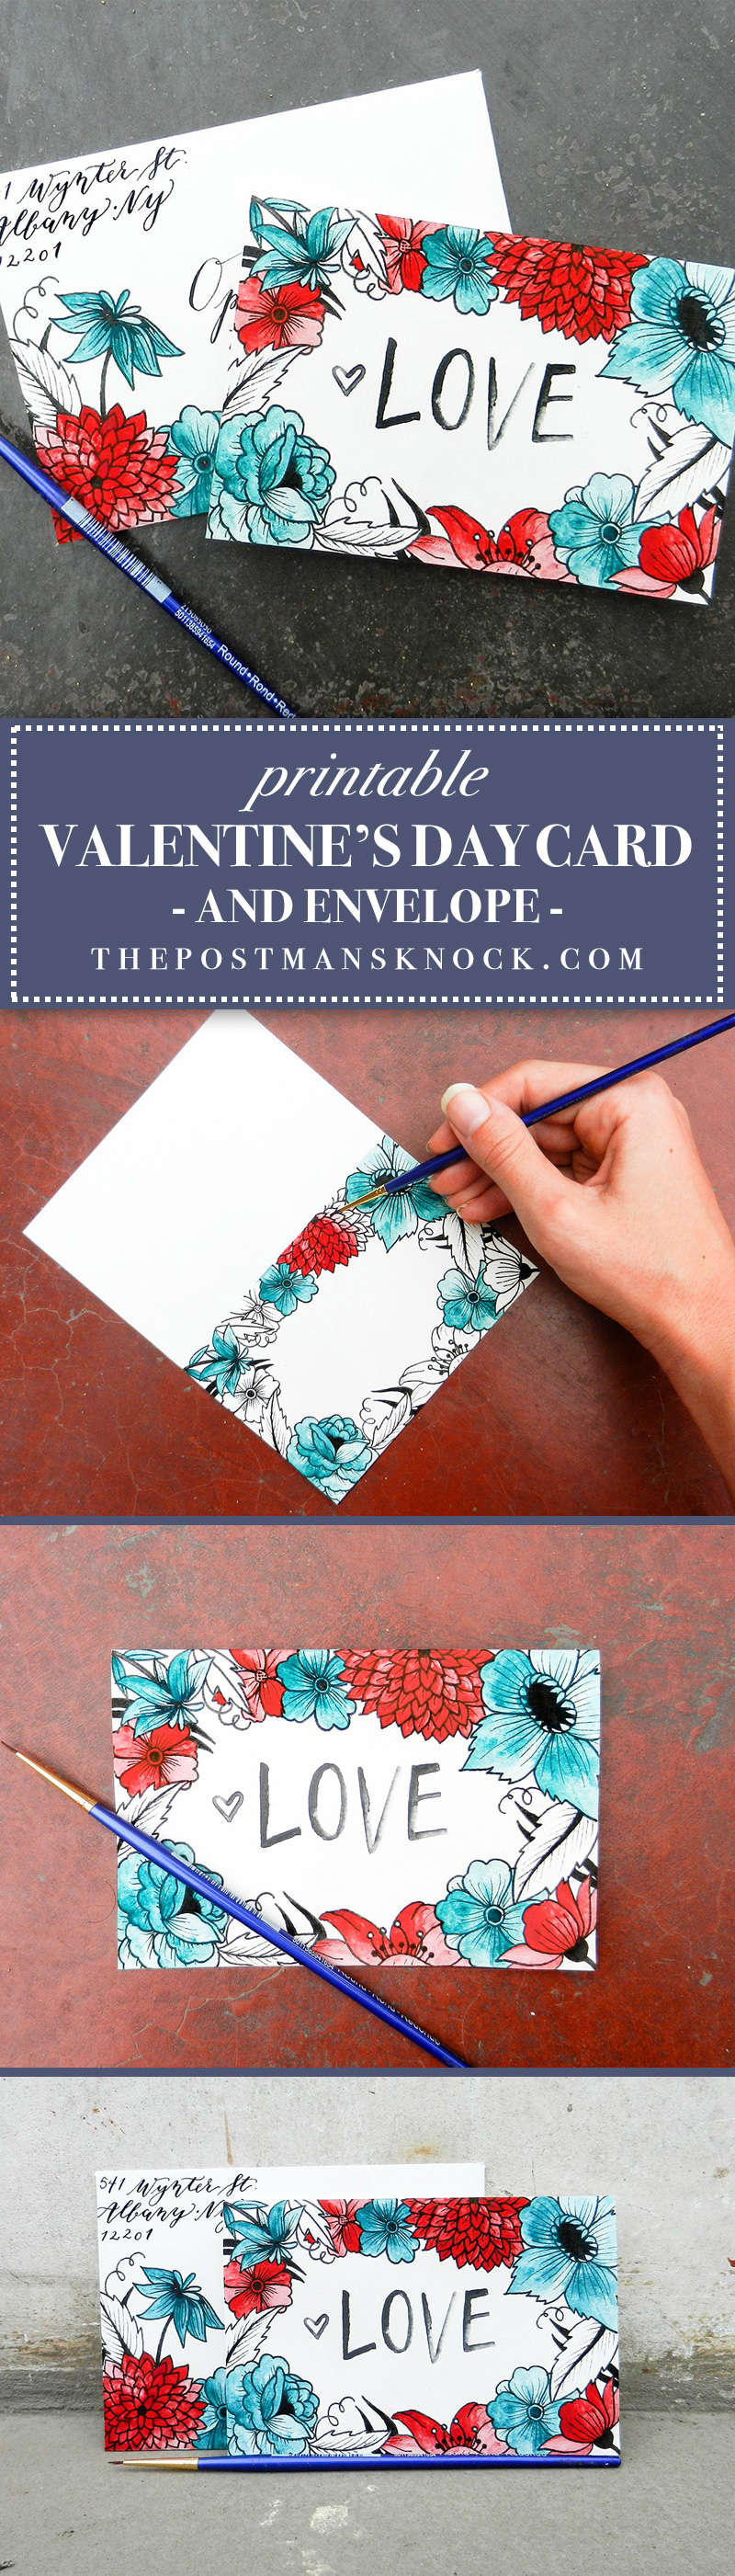 Printable Valentine's Day Card + Envelope | The Postman's Knock